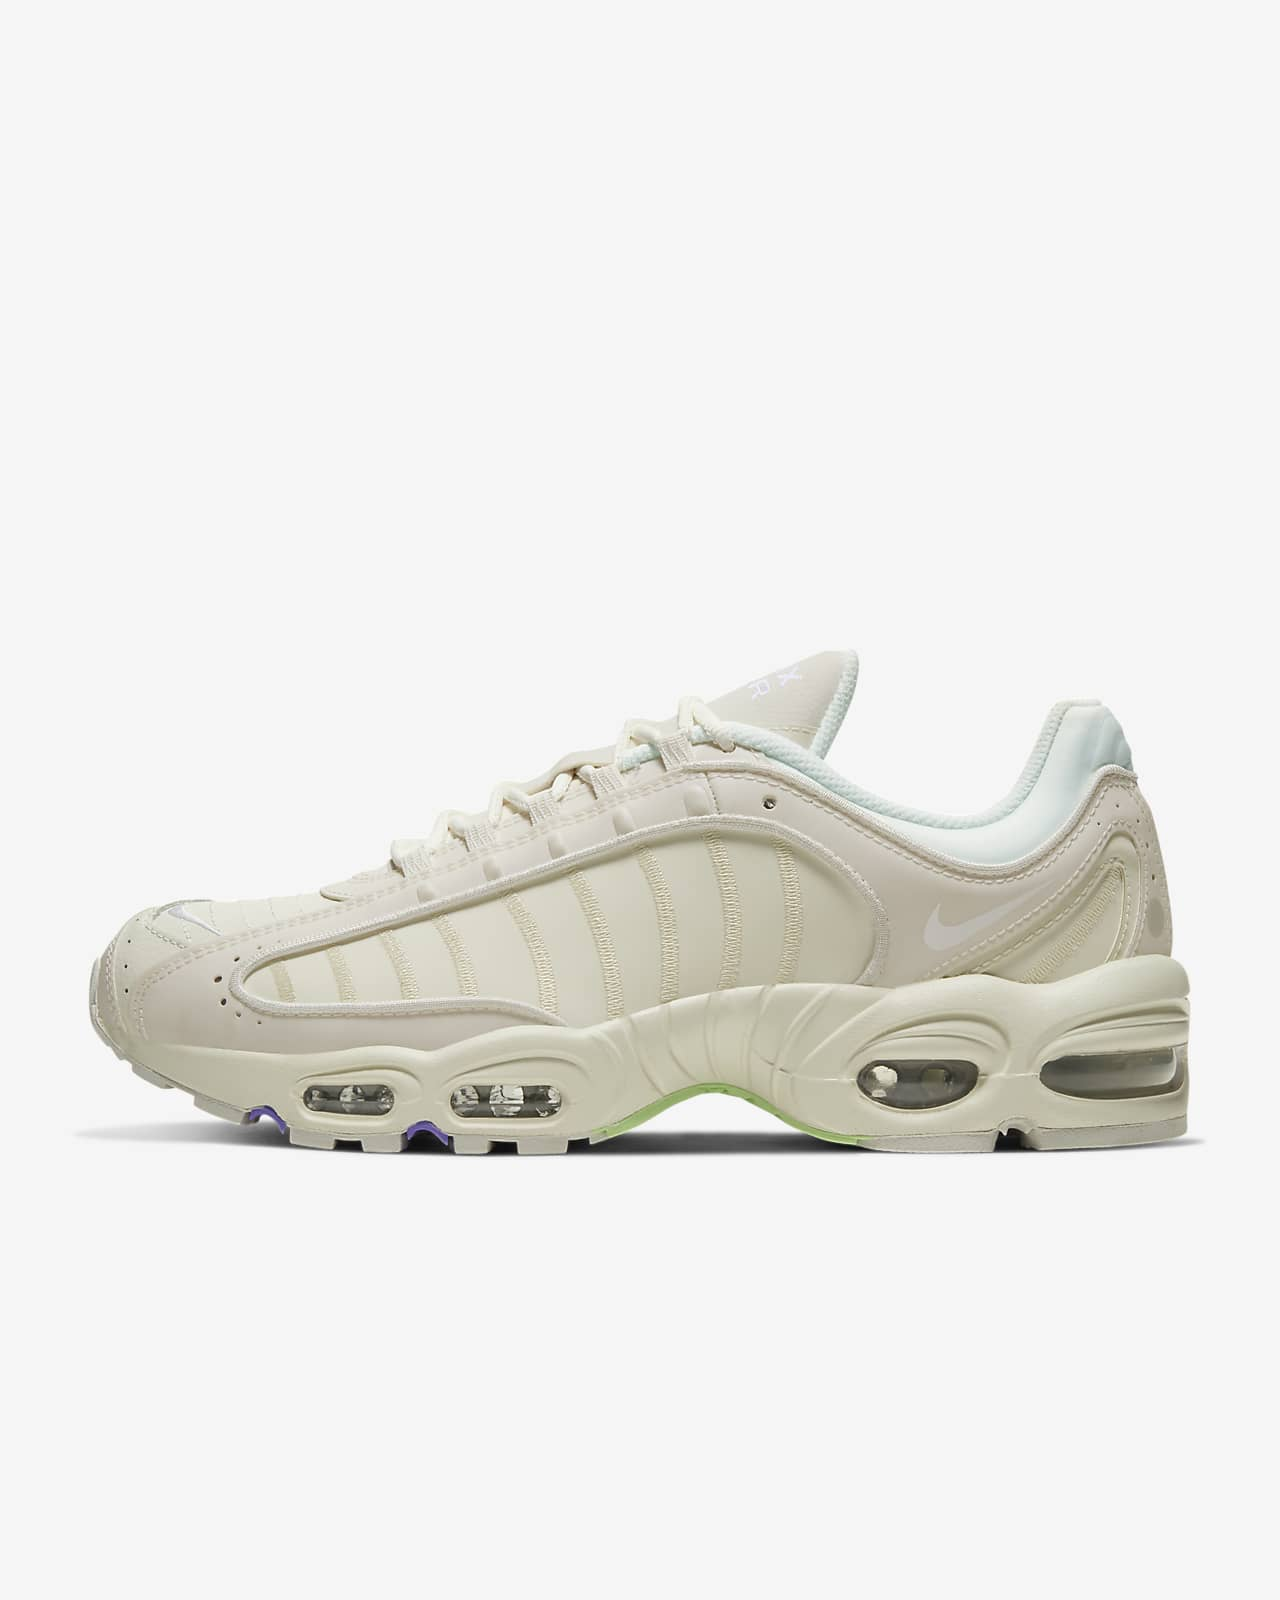 Nike Air Max Tailwind 99 Shoe